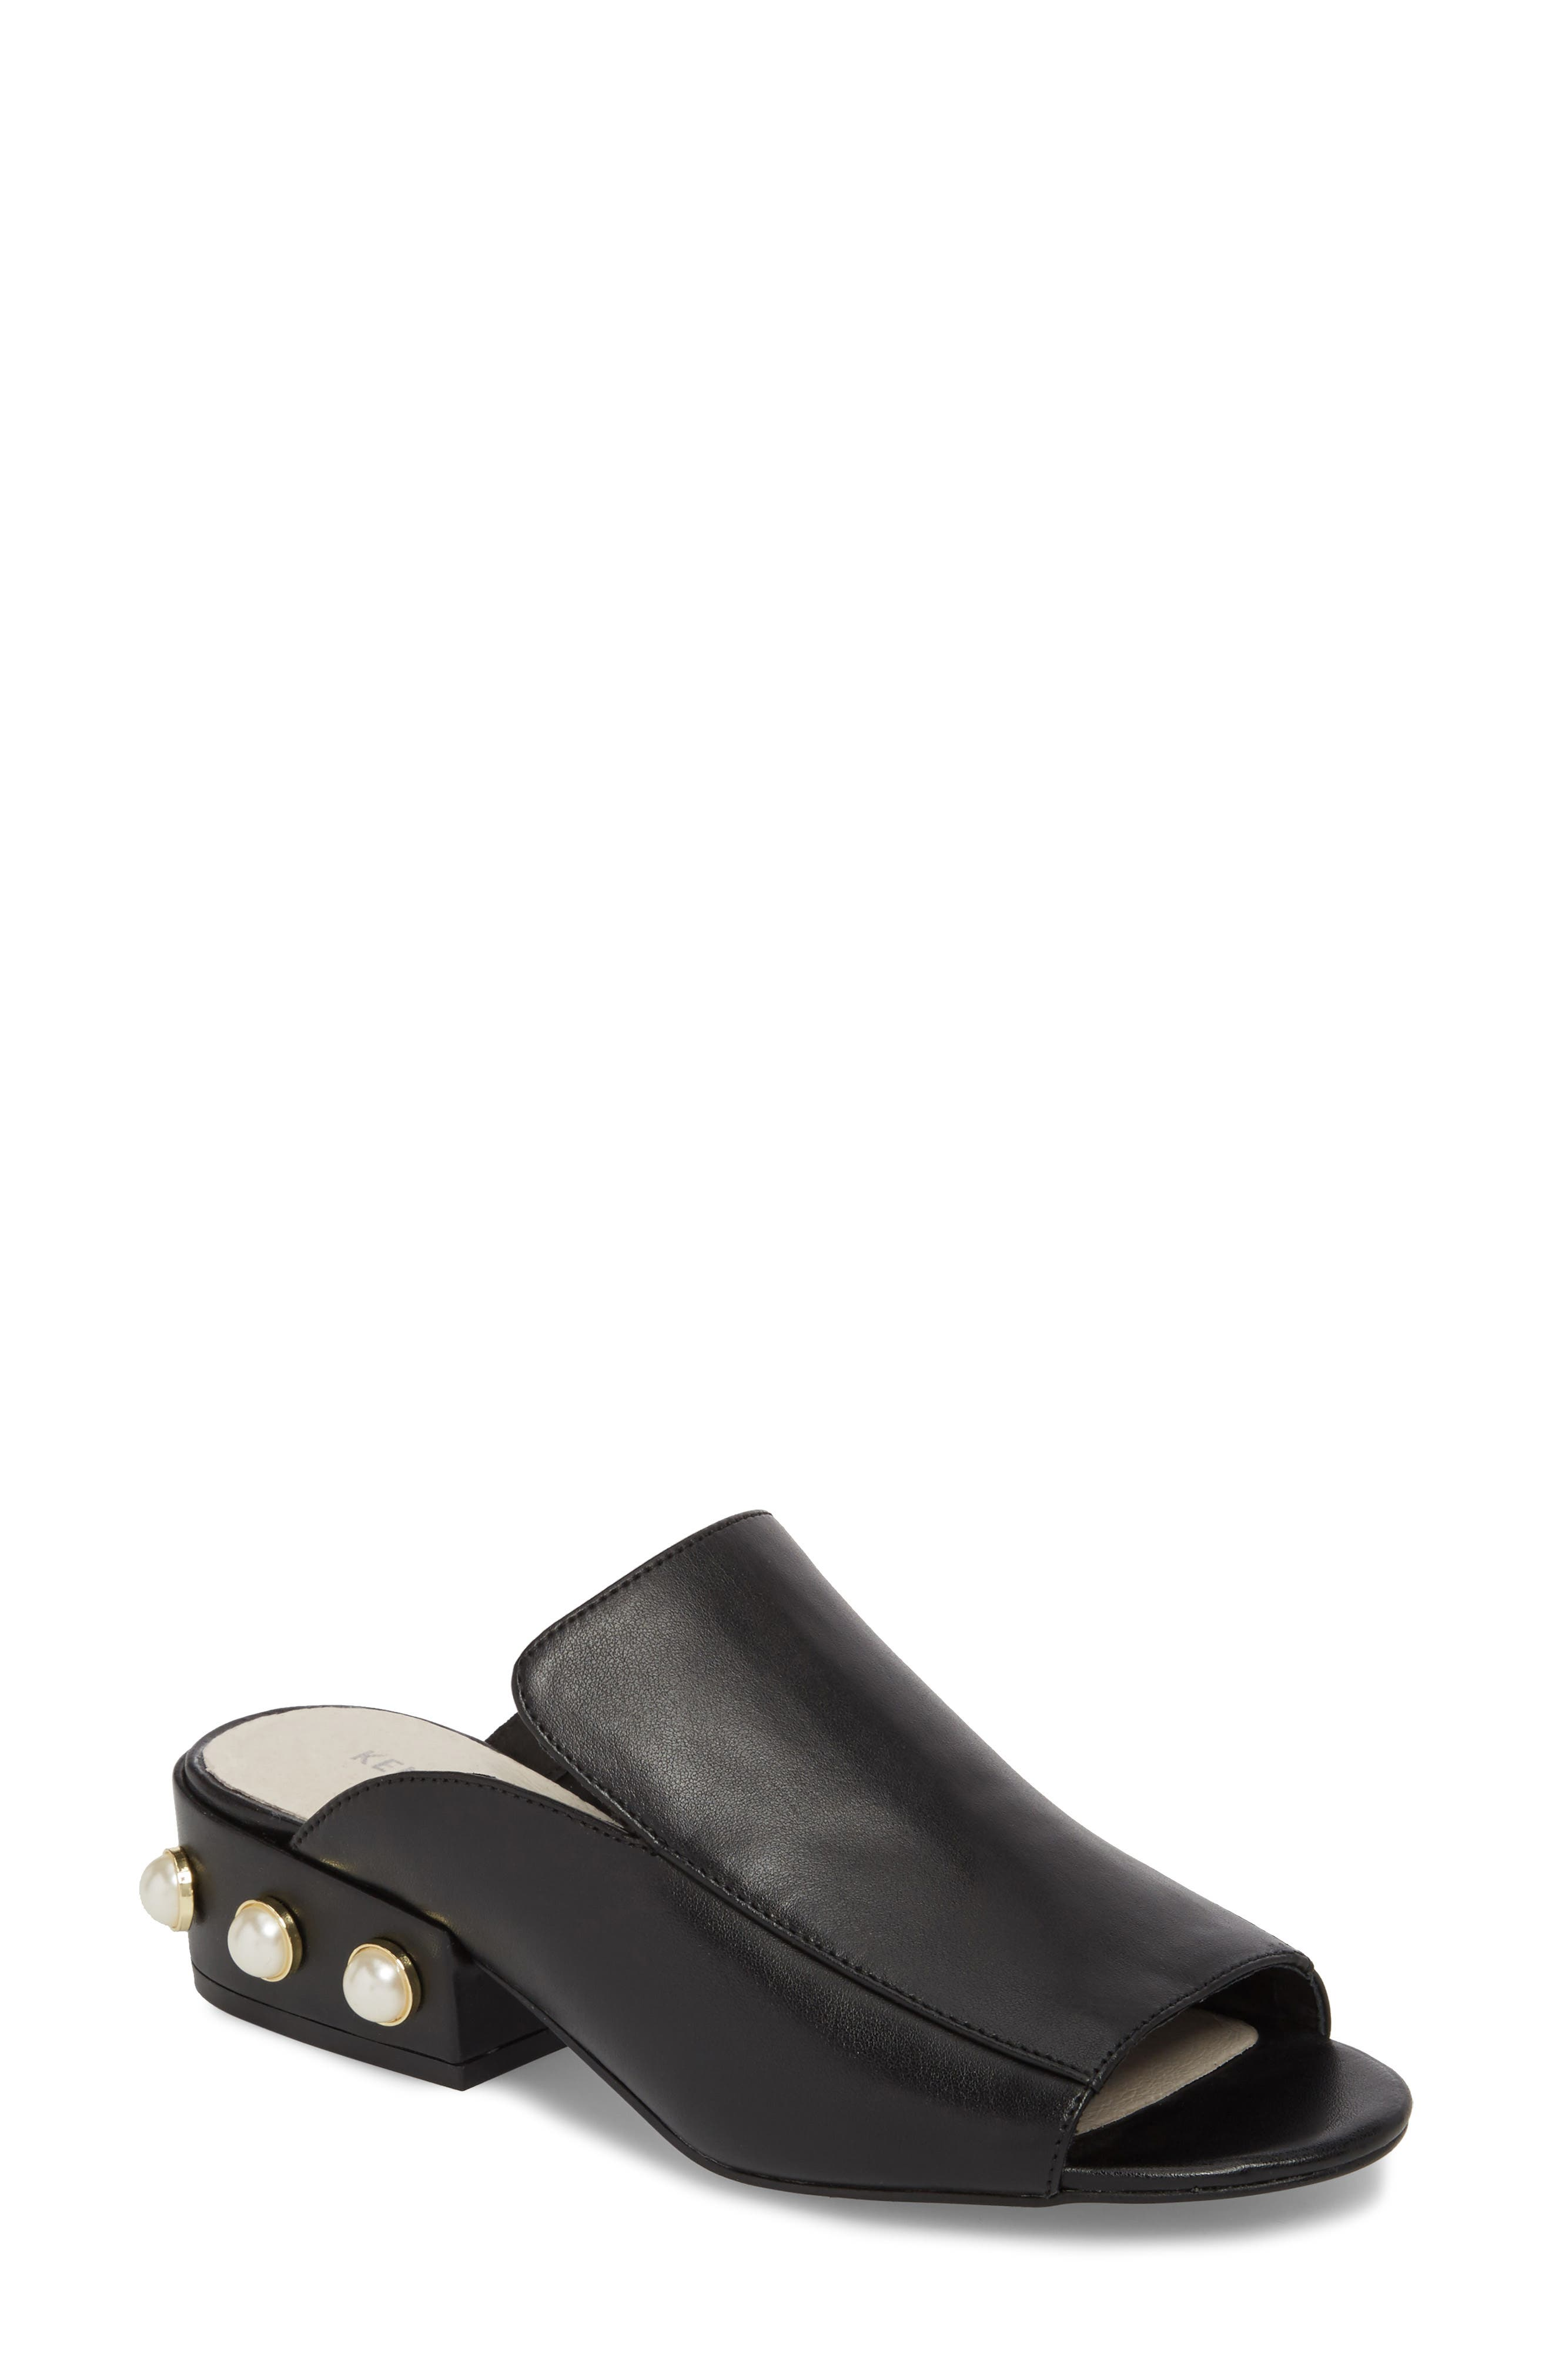 KENNETH COLE NEW YORK Farley Embellished Mule, Main, color, 001